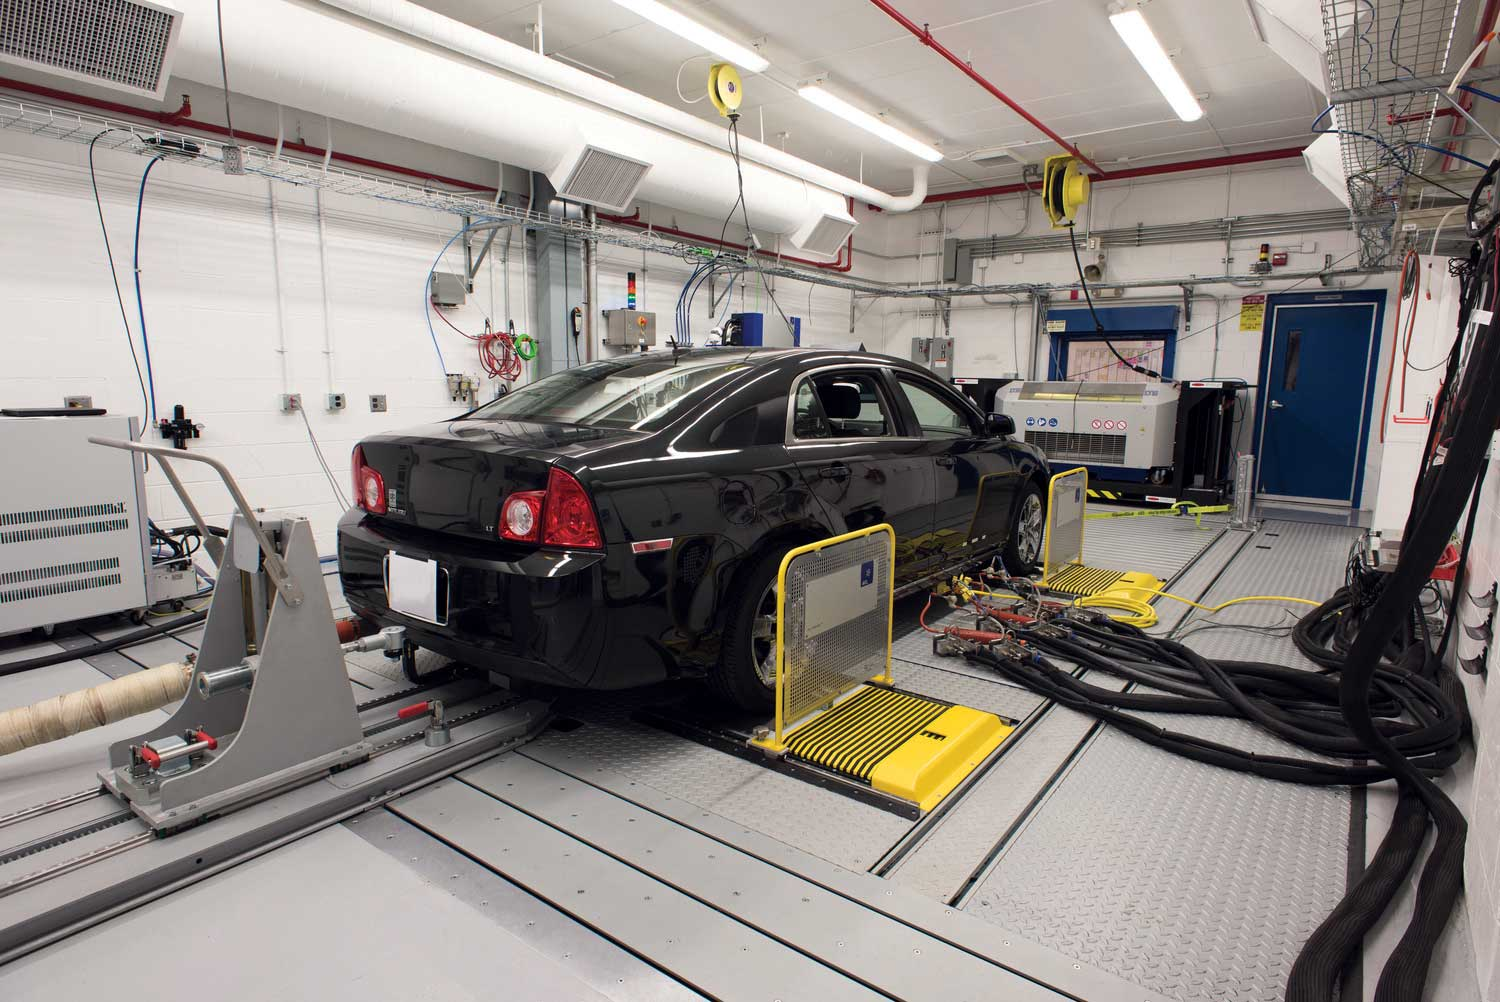 4wd chassis dyno emissions test cell upgrade, vehicle test cell upgrade, acs expands michigan